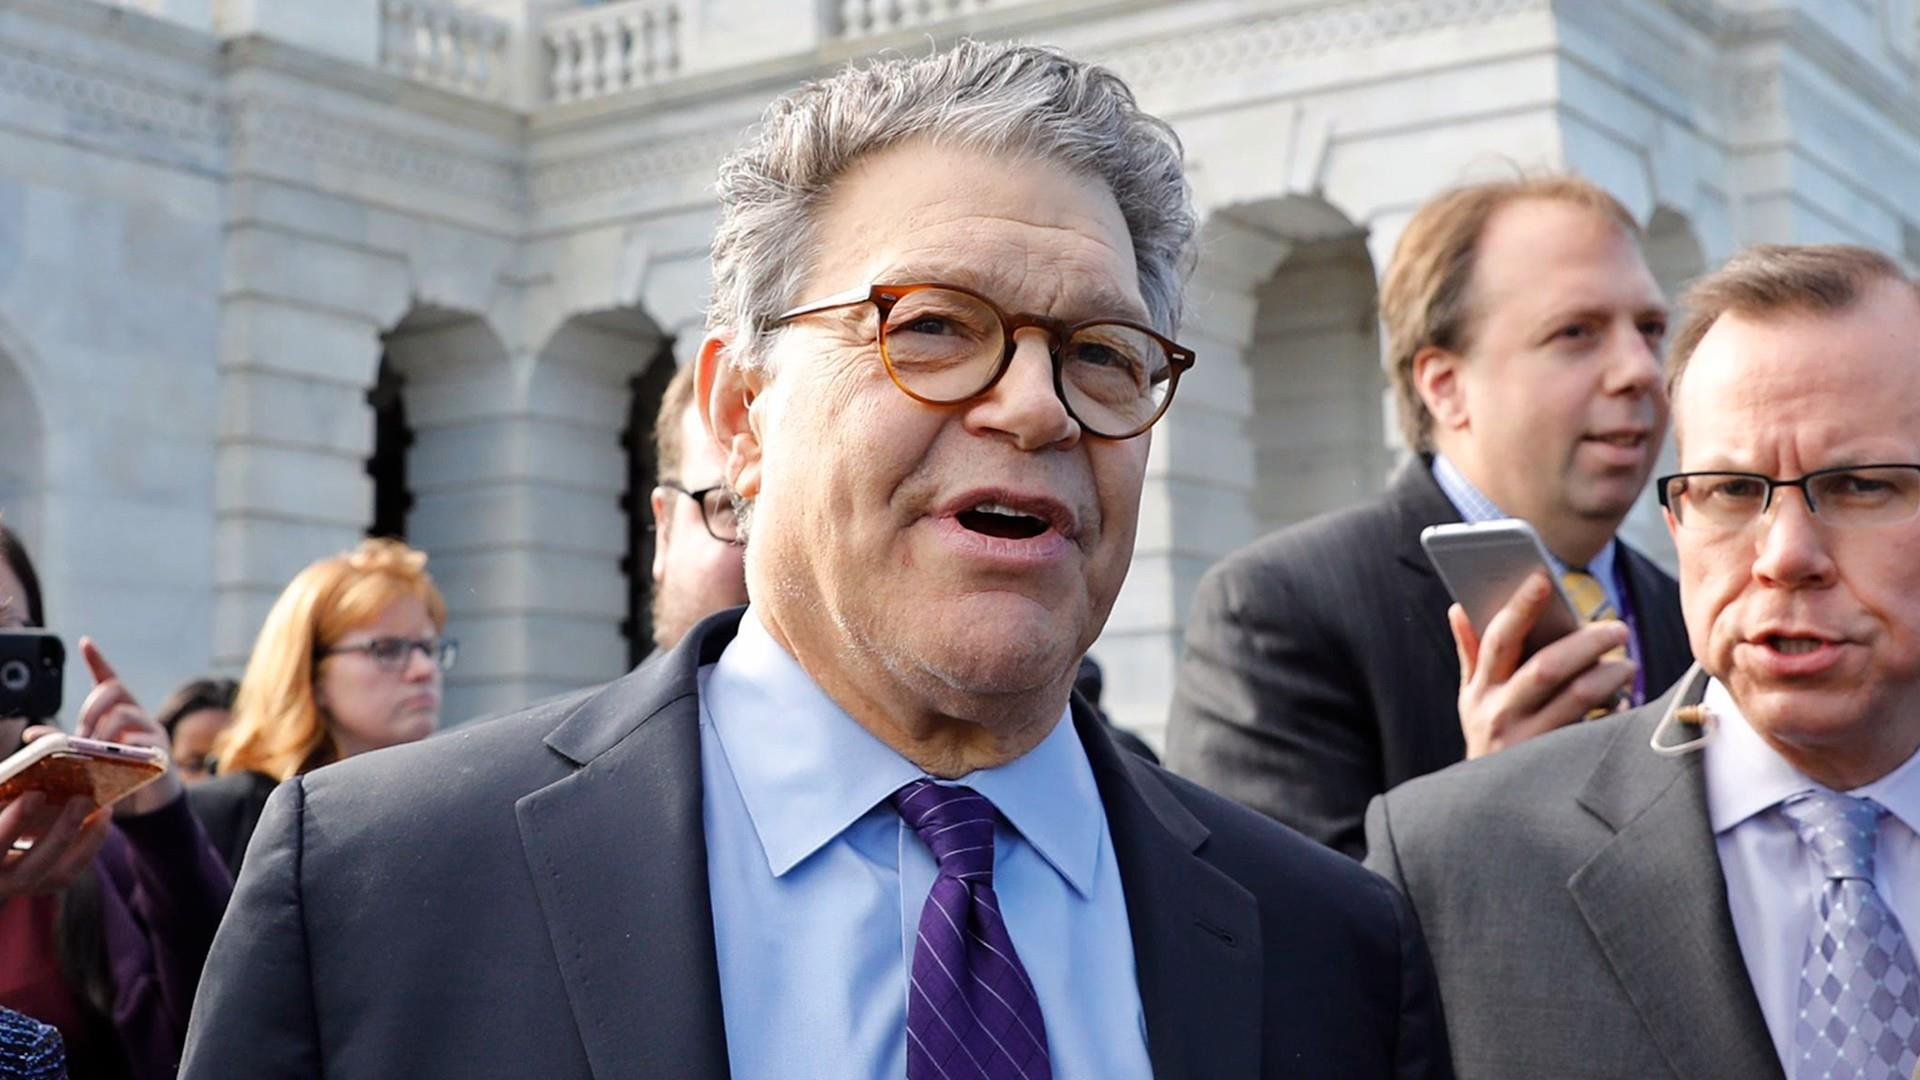 Franken exit could be game-changer for control of Senate